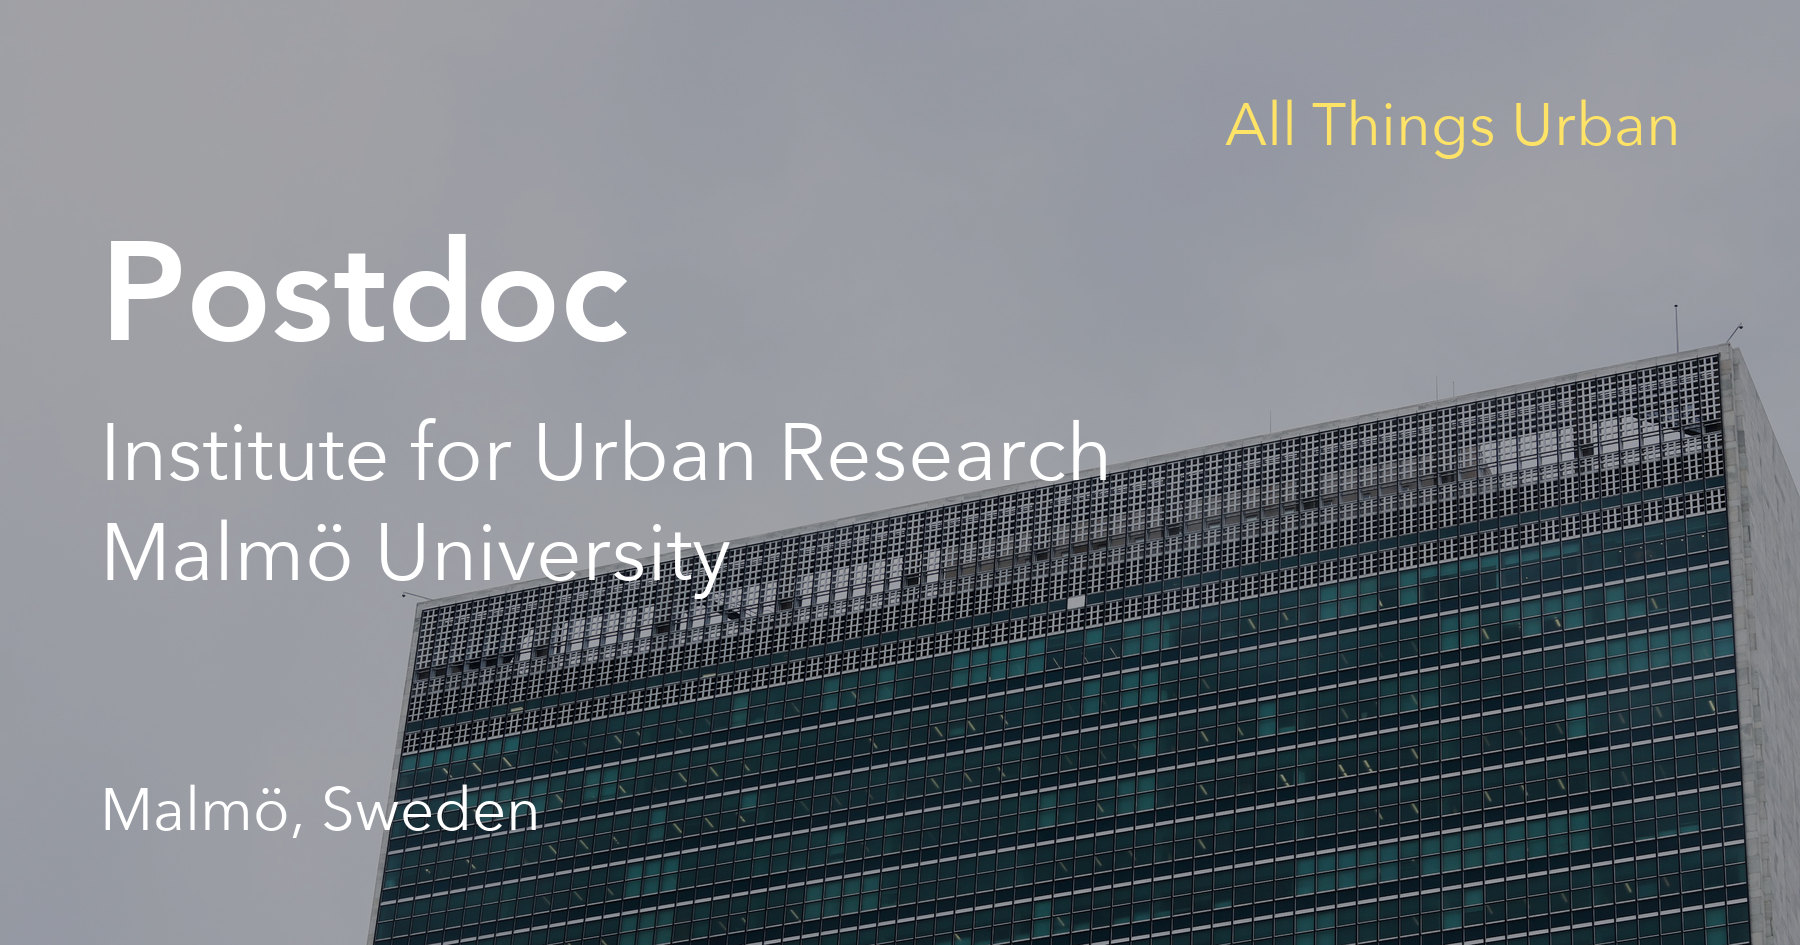 All Things Urban - Postdoc at the Institute for Urban